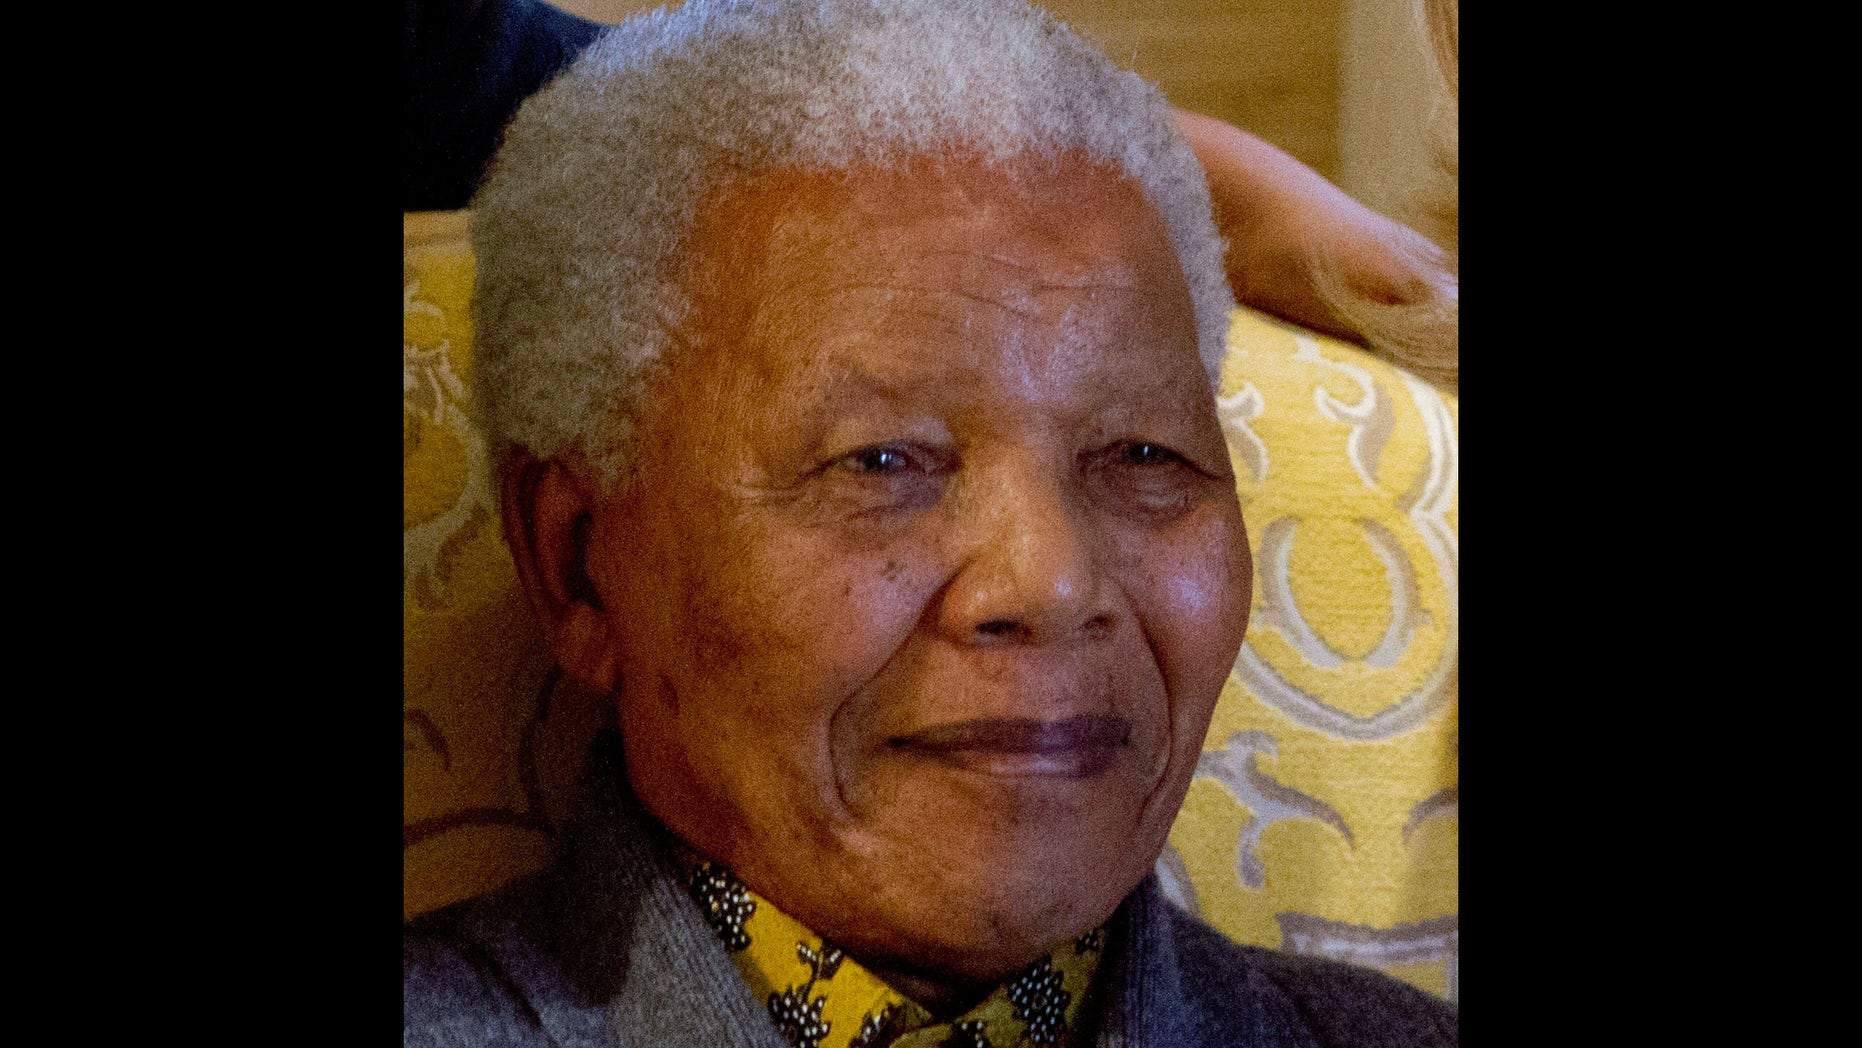 FILE -  This photo taken Monday Aug. 6, 2012 shows former South African President Nelson Mandela when he met with US Secretary of State Hillary Rodham Clinton, unseen, at his home in Qunu, South Africa. Mandela on Friday, Dec 14 2012  entered the seventh day of a hospital stay for a lung infection as questions grow about where he is receiving treatment. The 94-year-old patriarch of South Africa's democracy has been hospitalized since Saturday, first undergoing tests and later being diagnosed with the ailment. (AP Photo/Jacquelyn Martin, Pool, File)